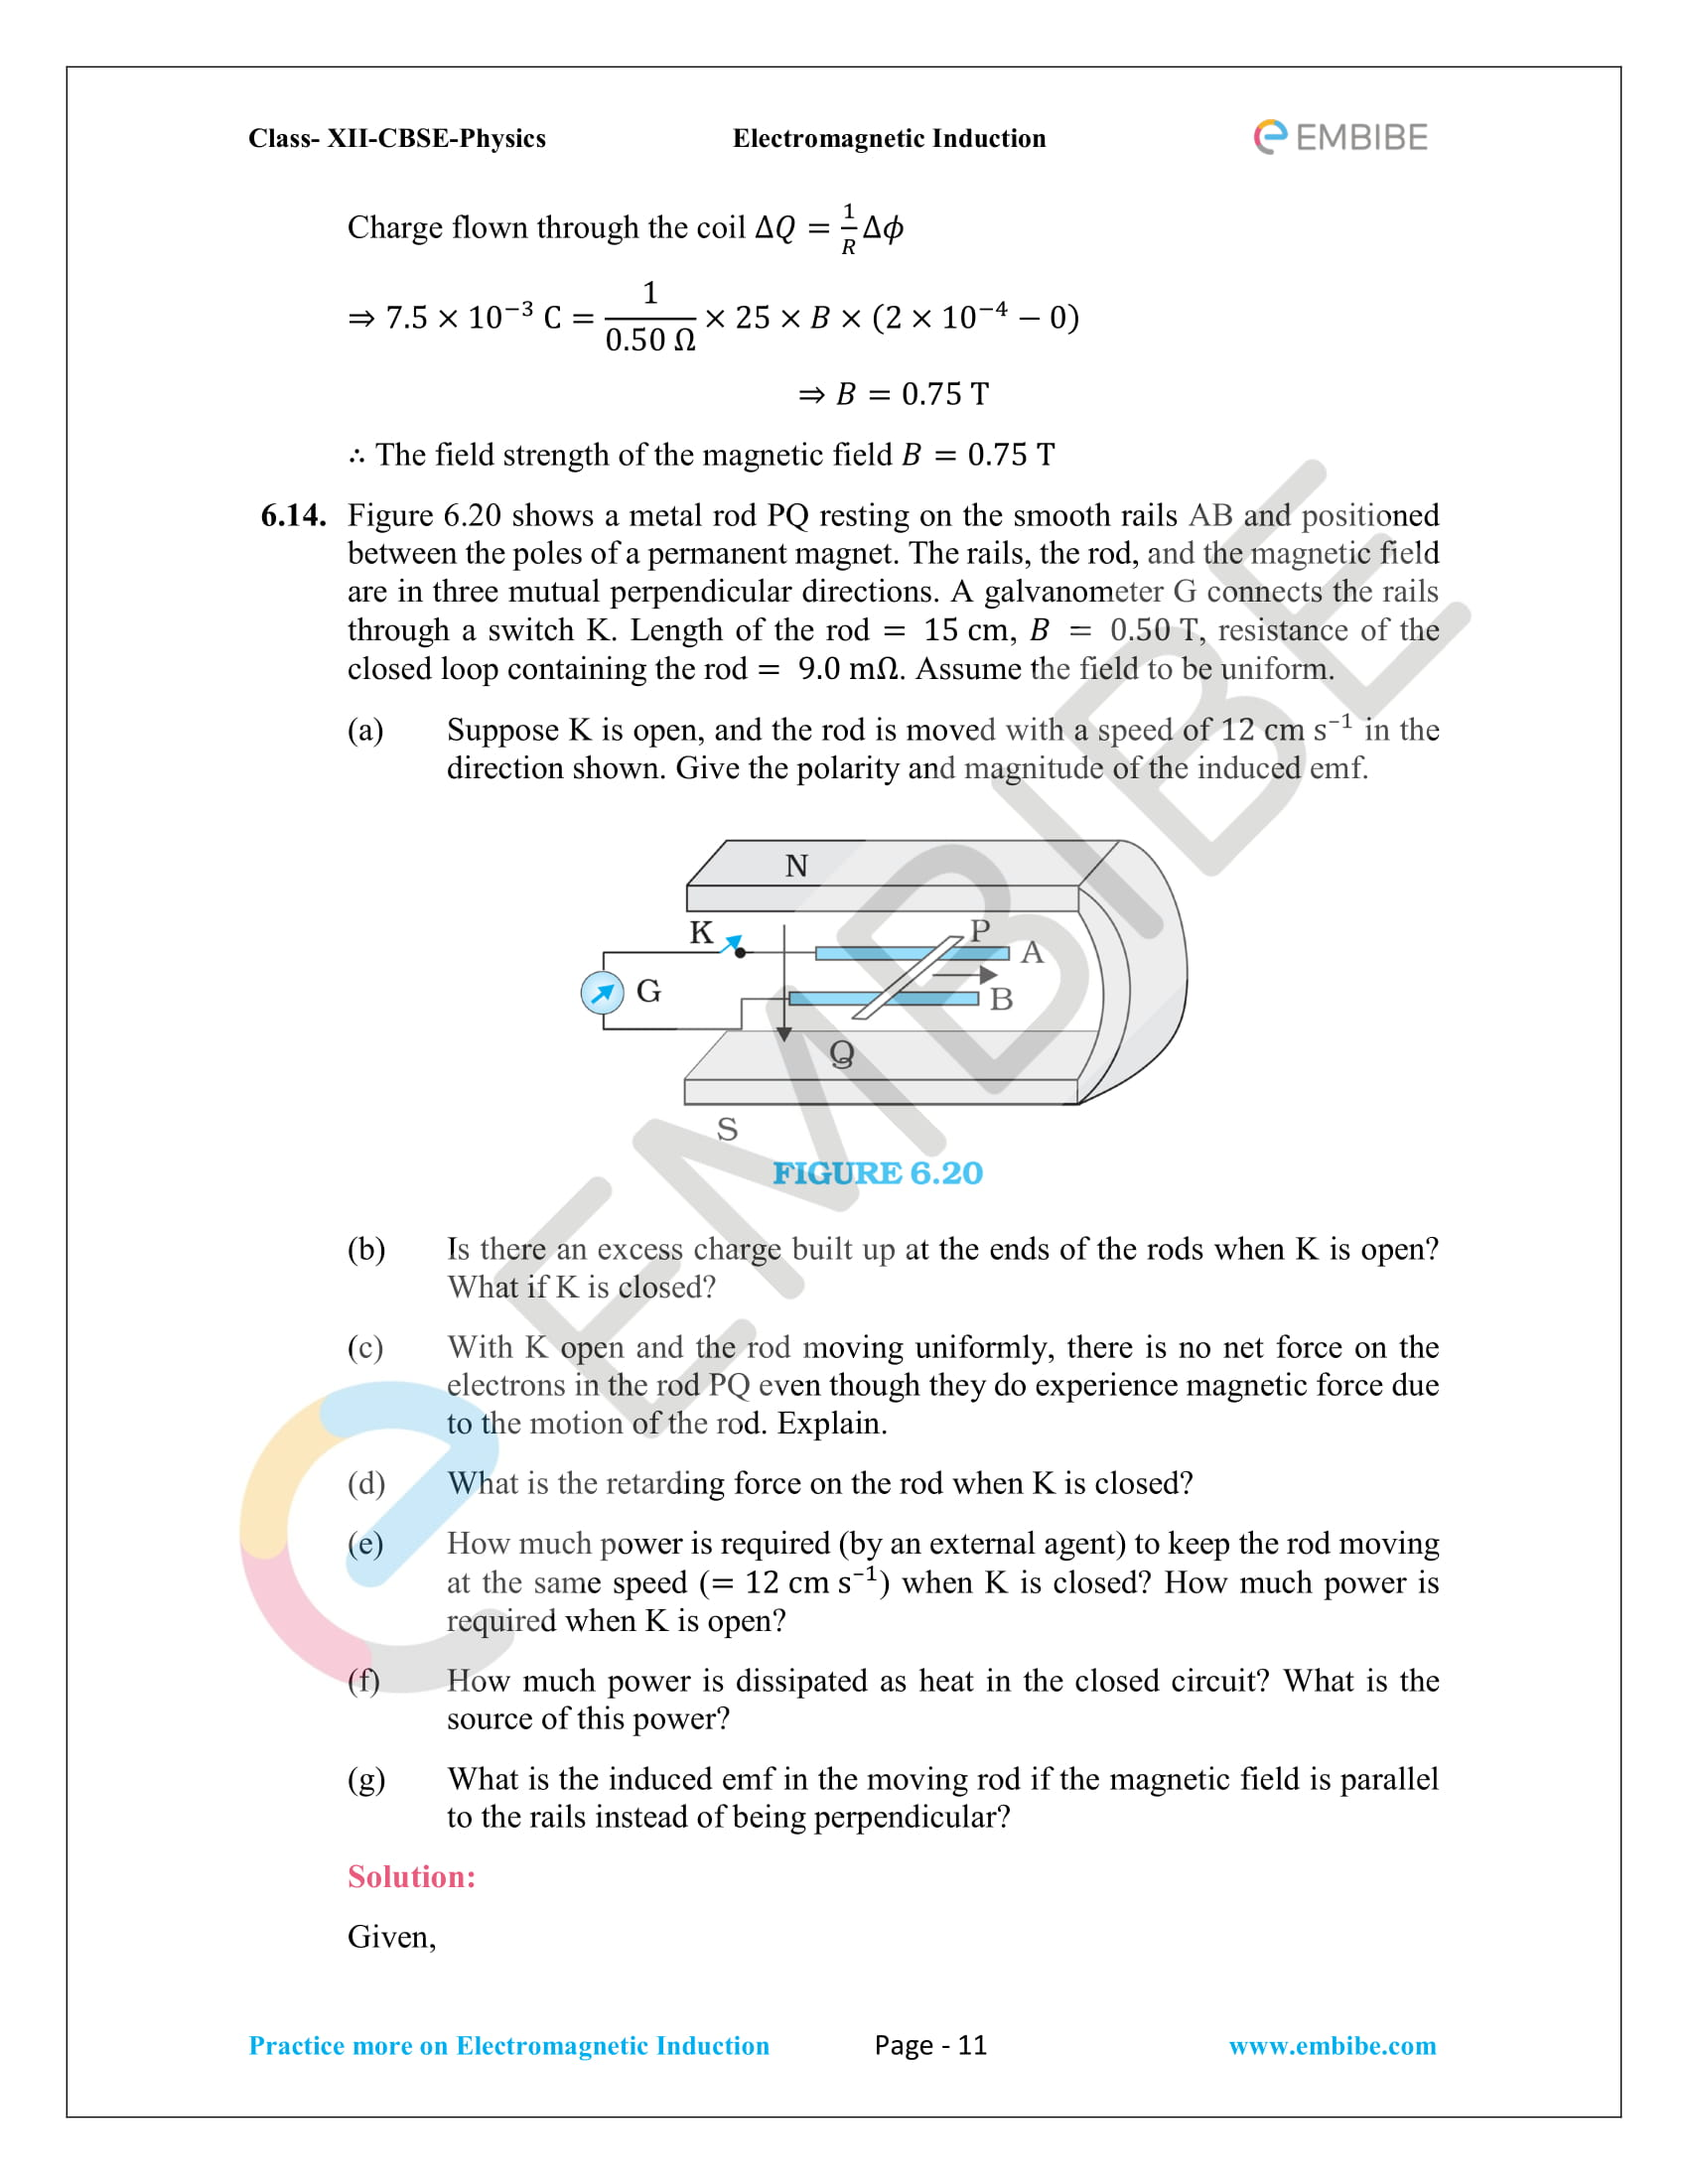 CBSE NCERT Solutions Class 12 Physics Chapter 6 PDF - Electromagnetic Induction - 11